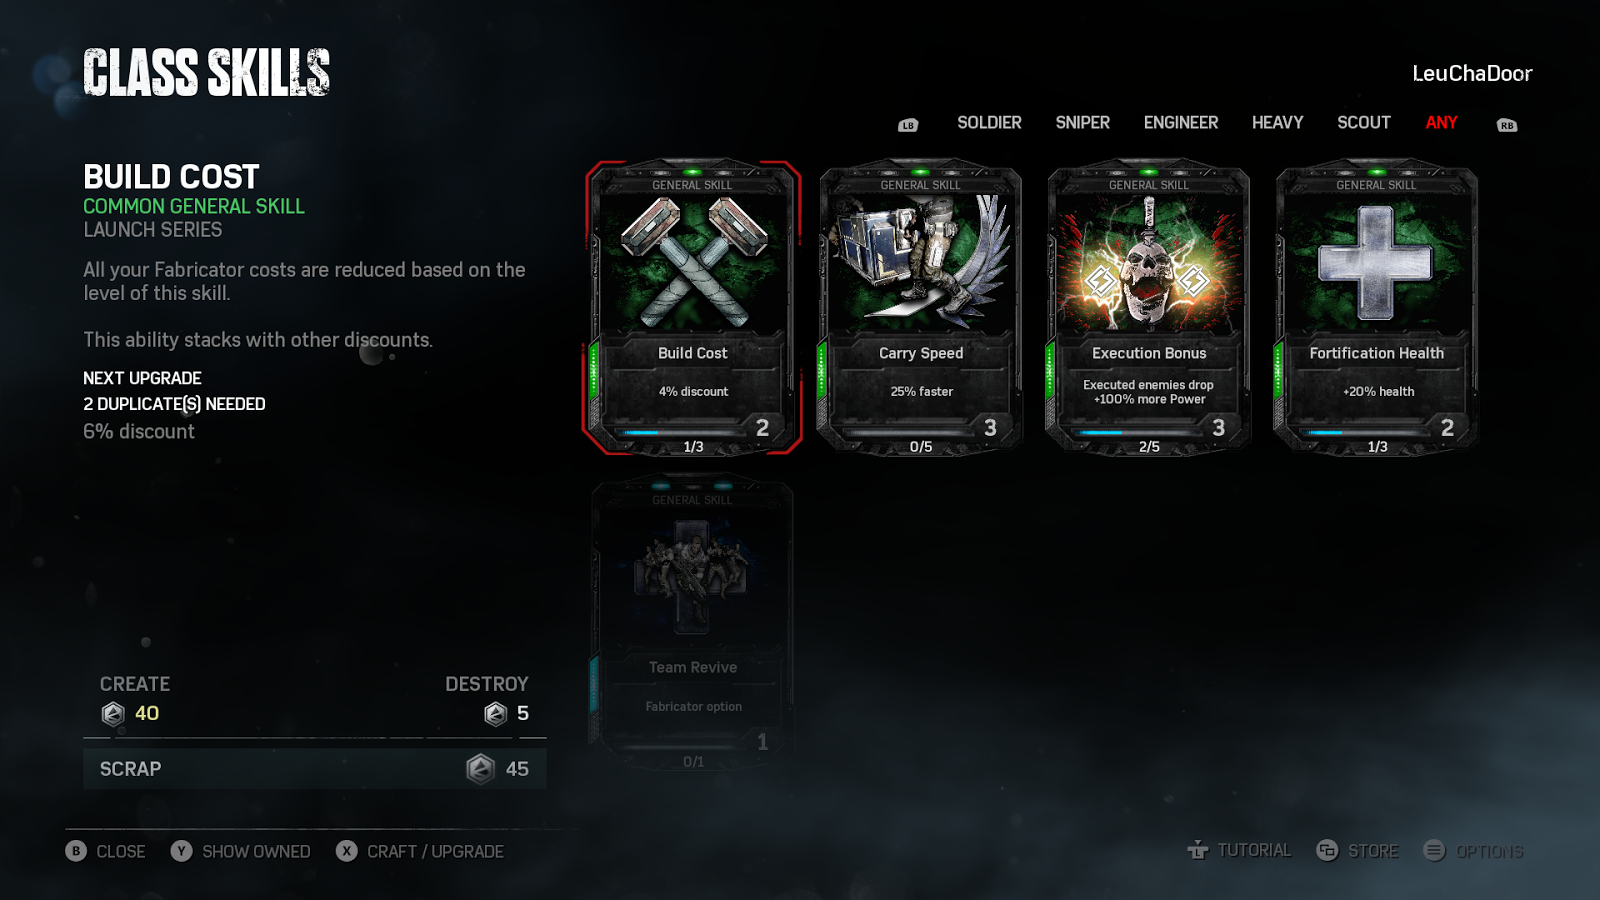 Getting you Started on Gears of War 4's Hode Mode 3 0 (Part 2):The